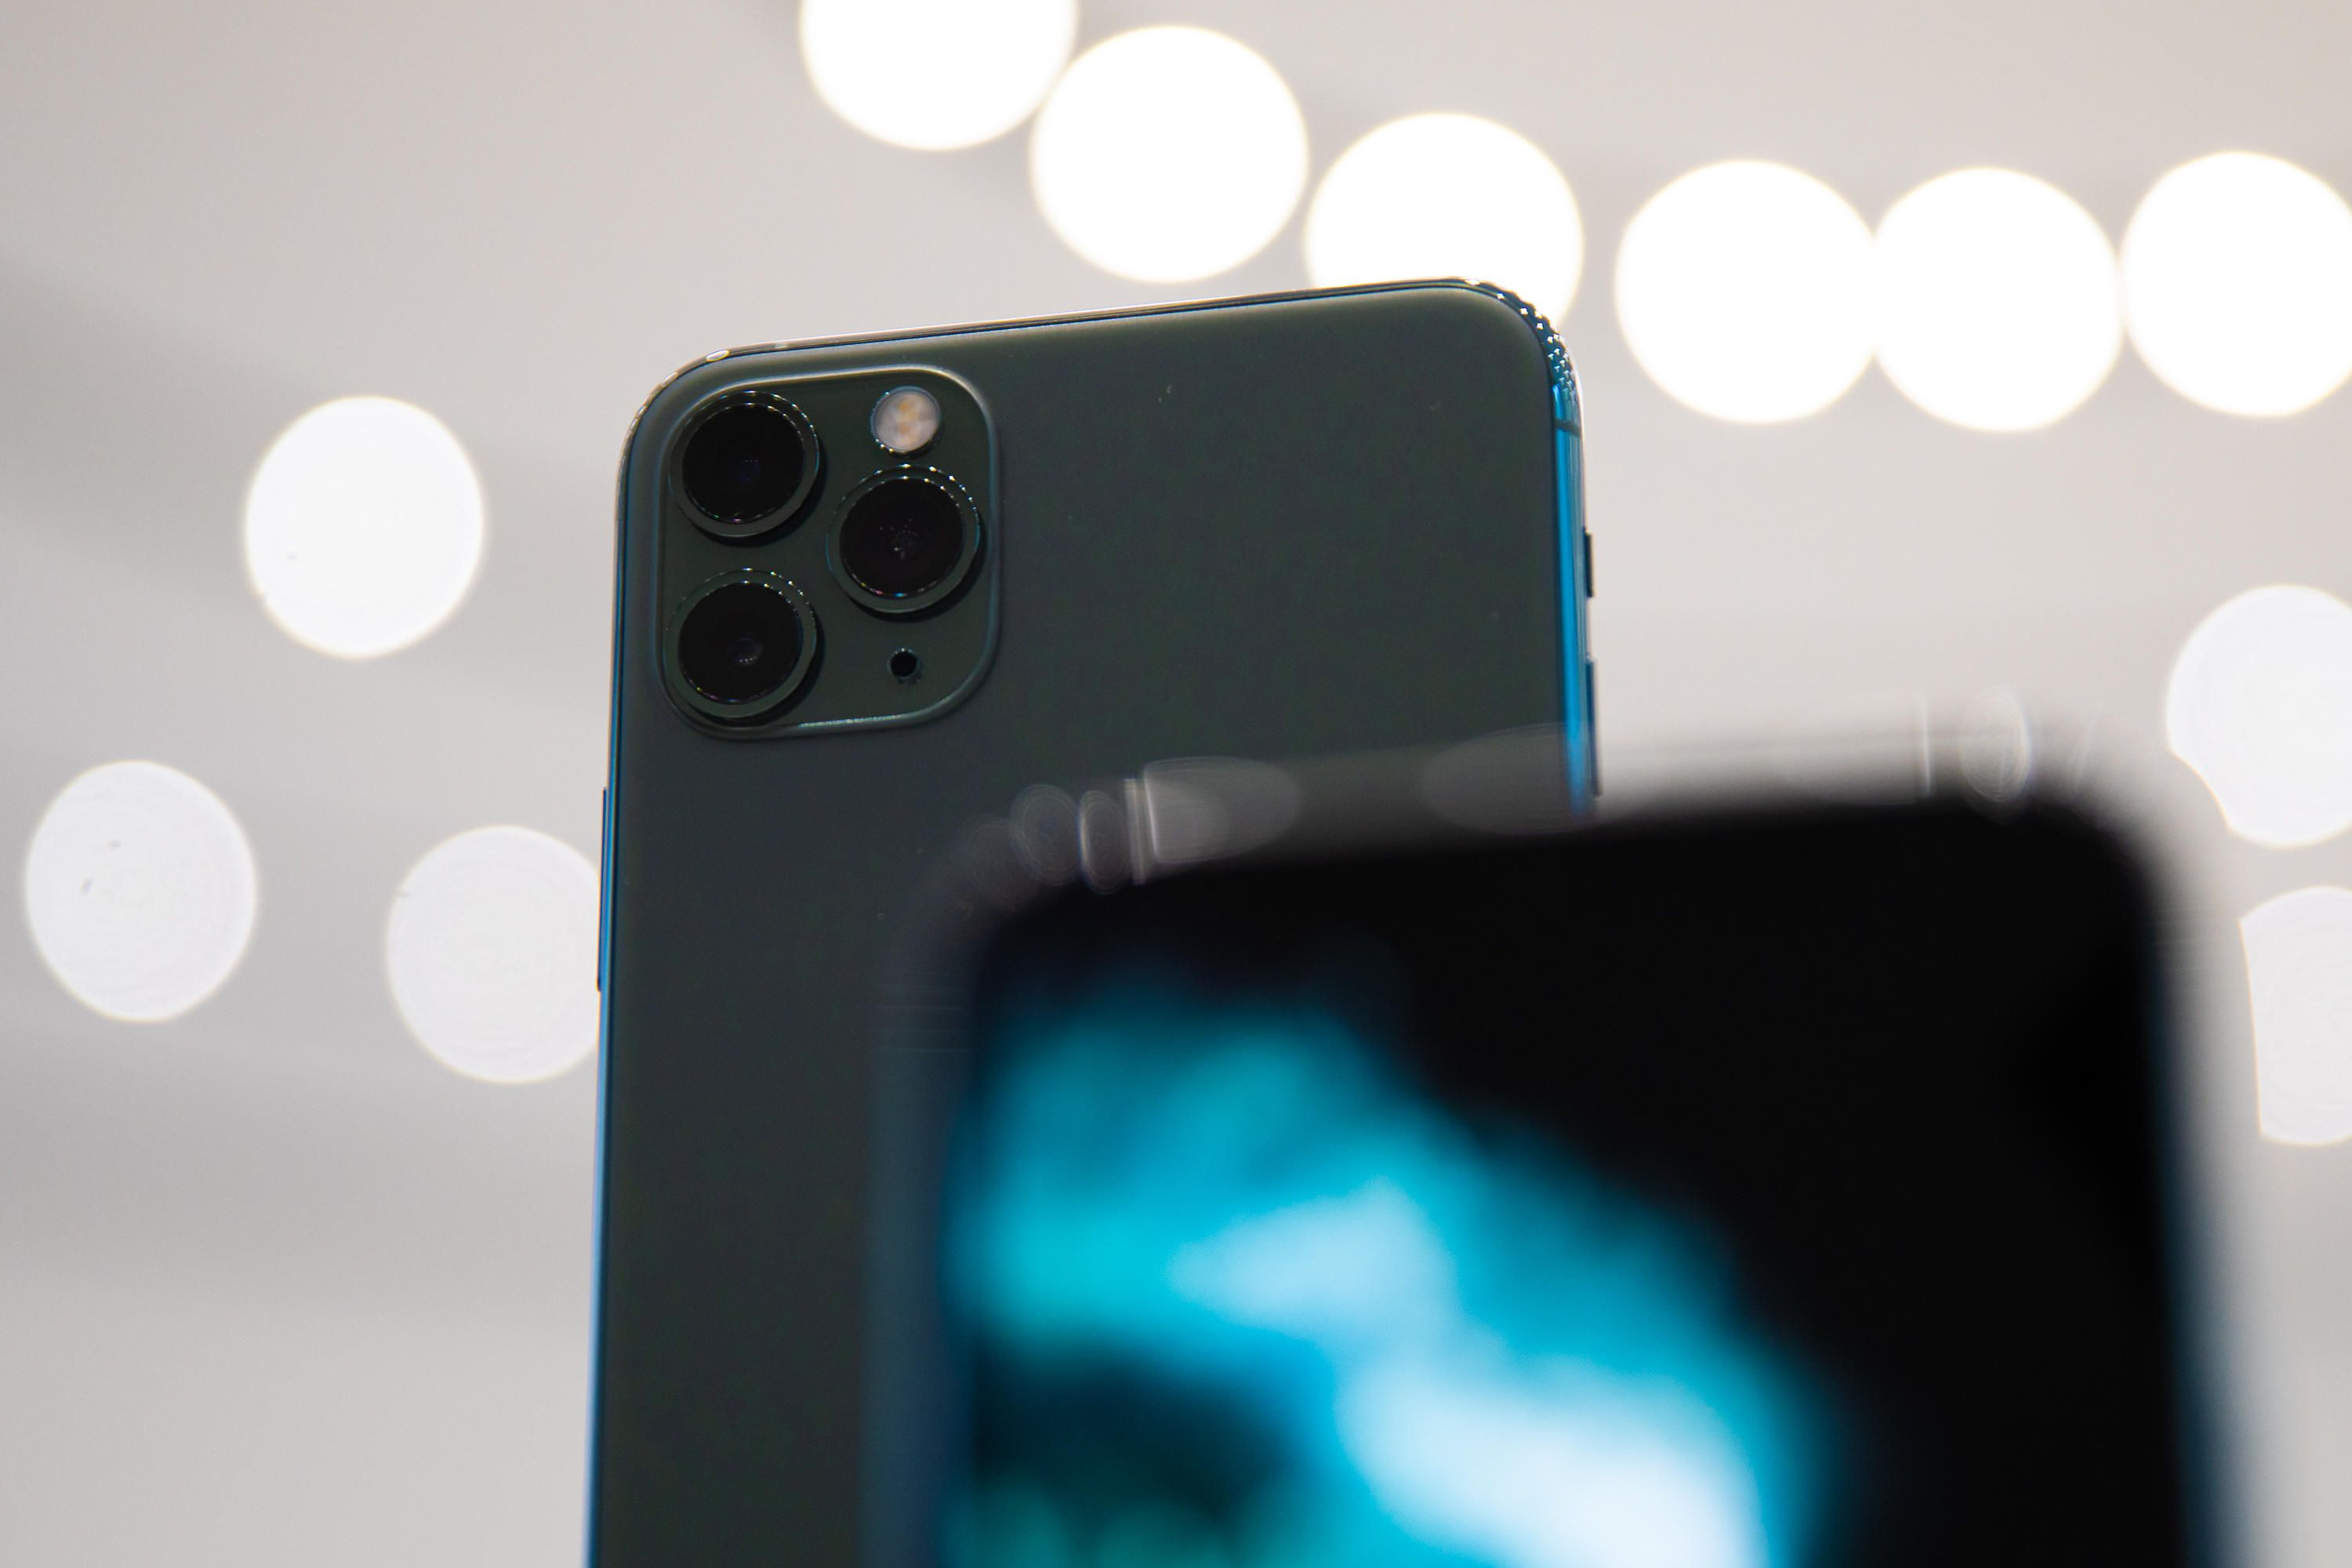 apple-event-091019-iphone-11-pro-8978